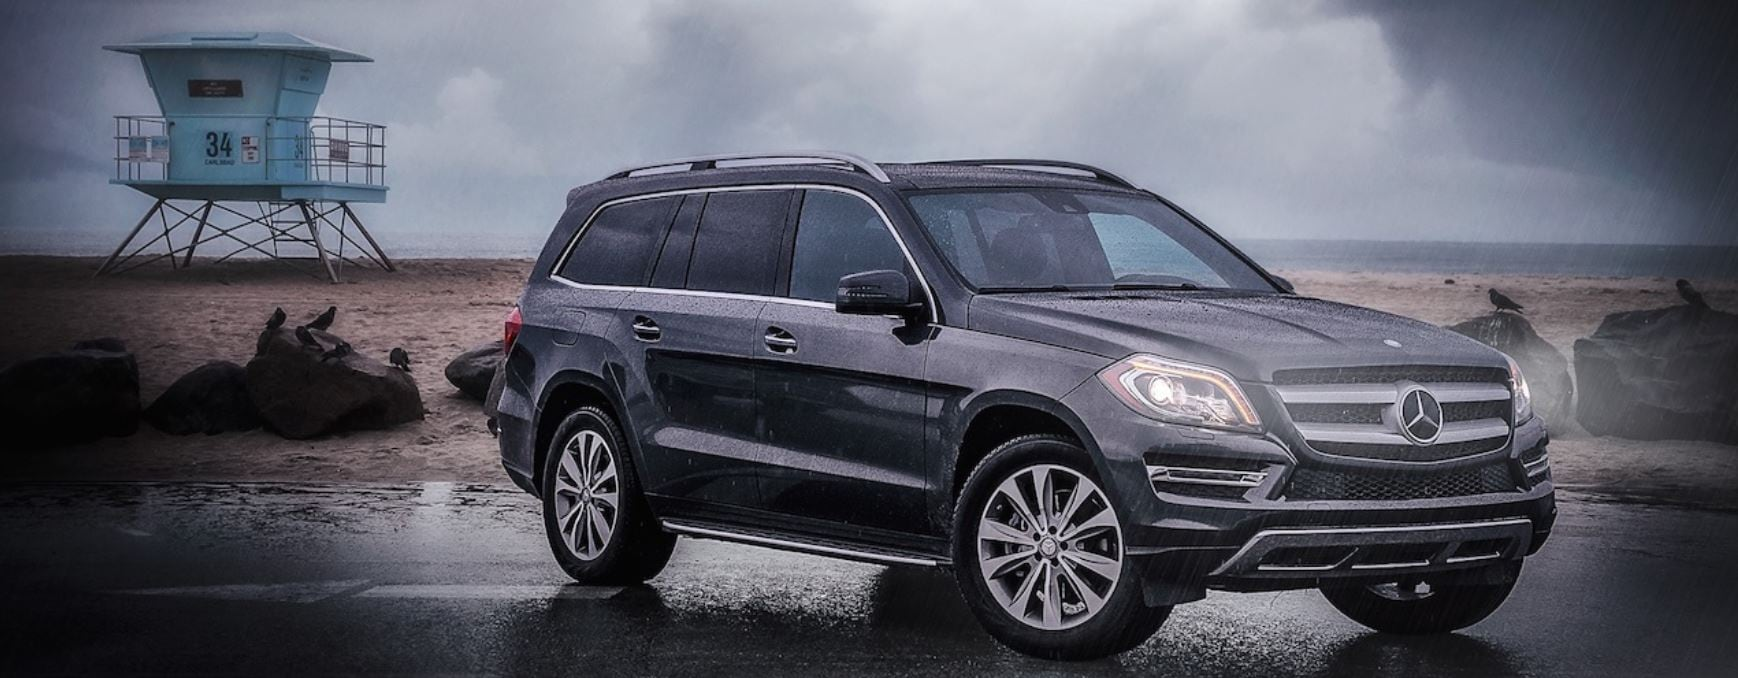 new Mercedes-Benz GLS 450